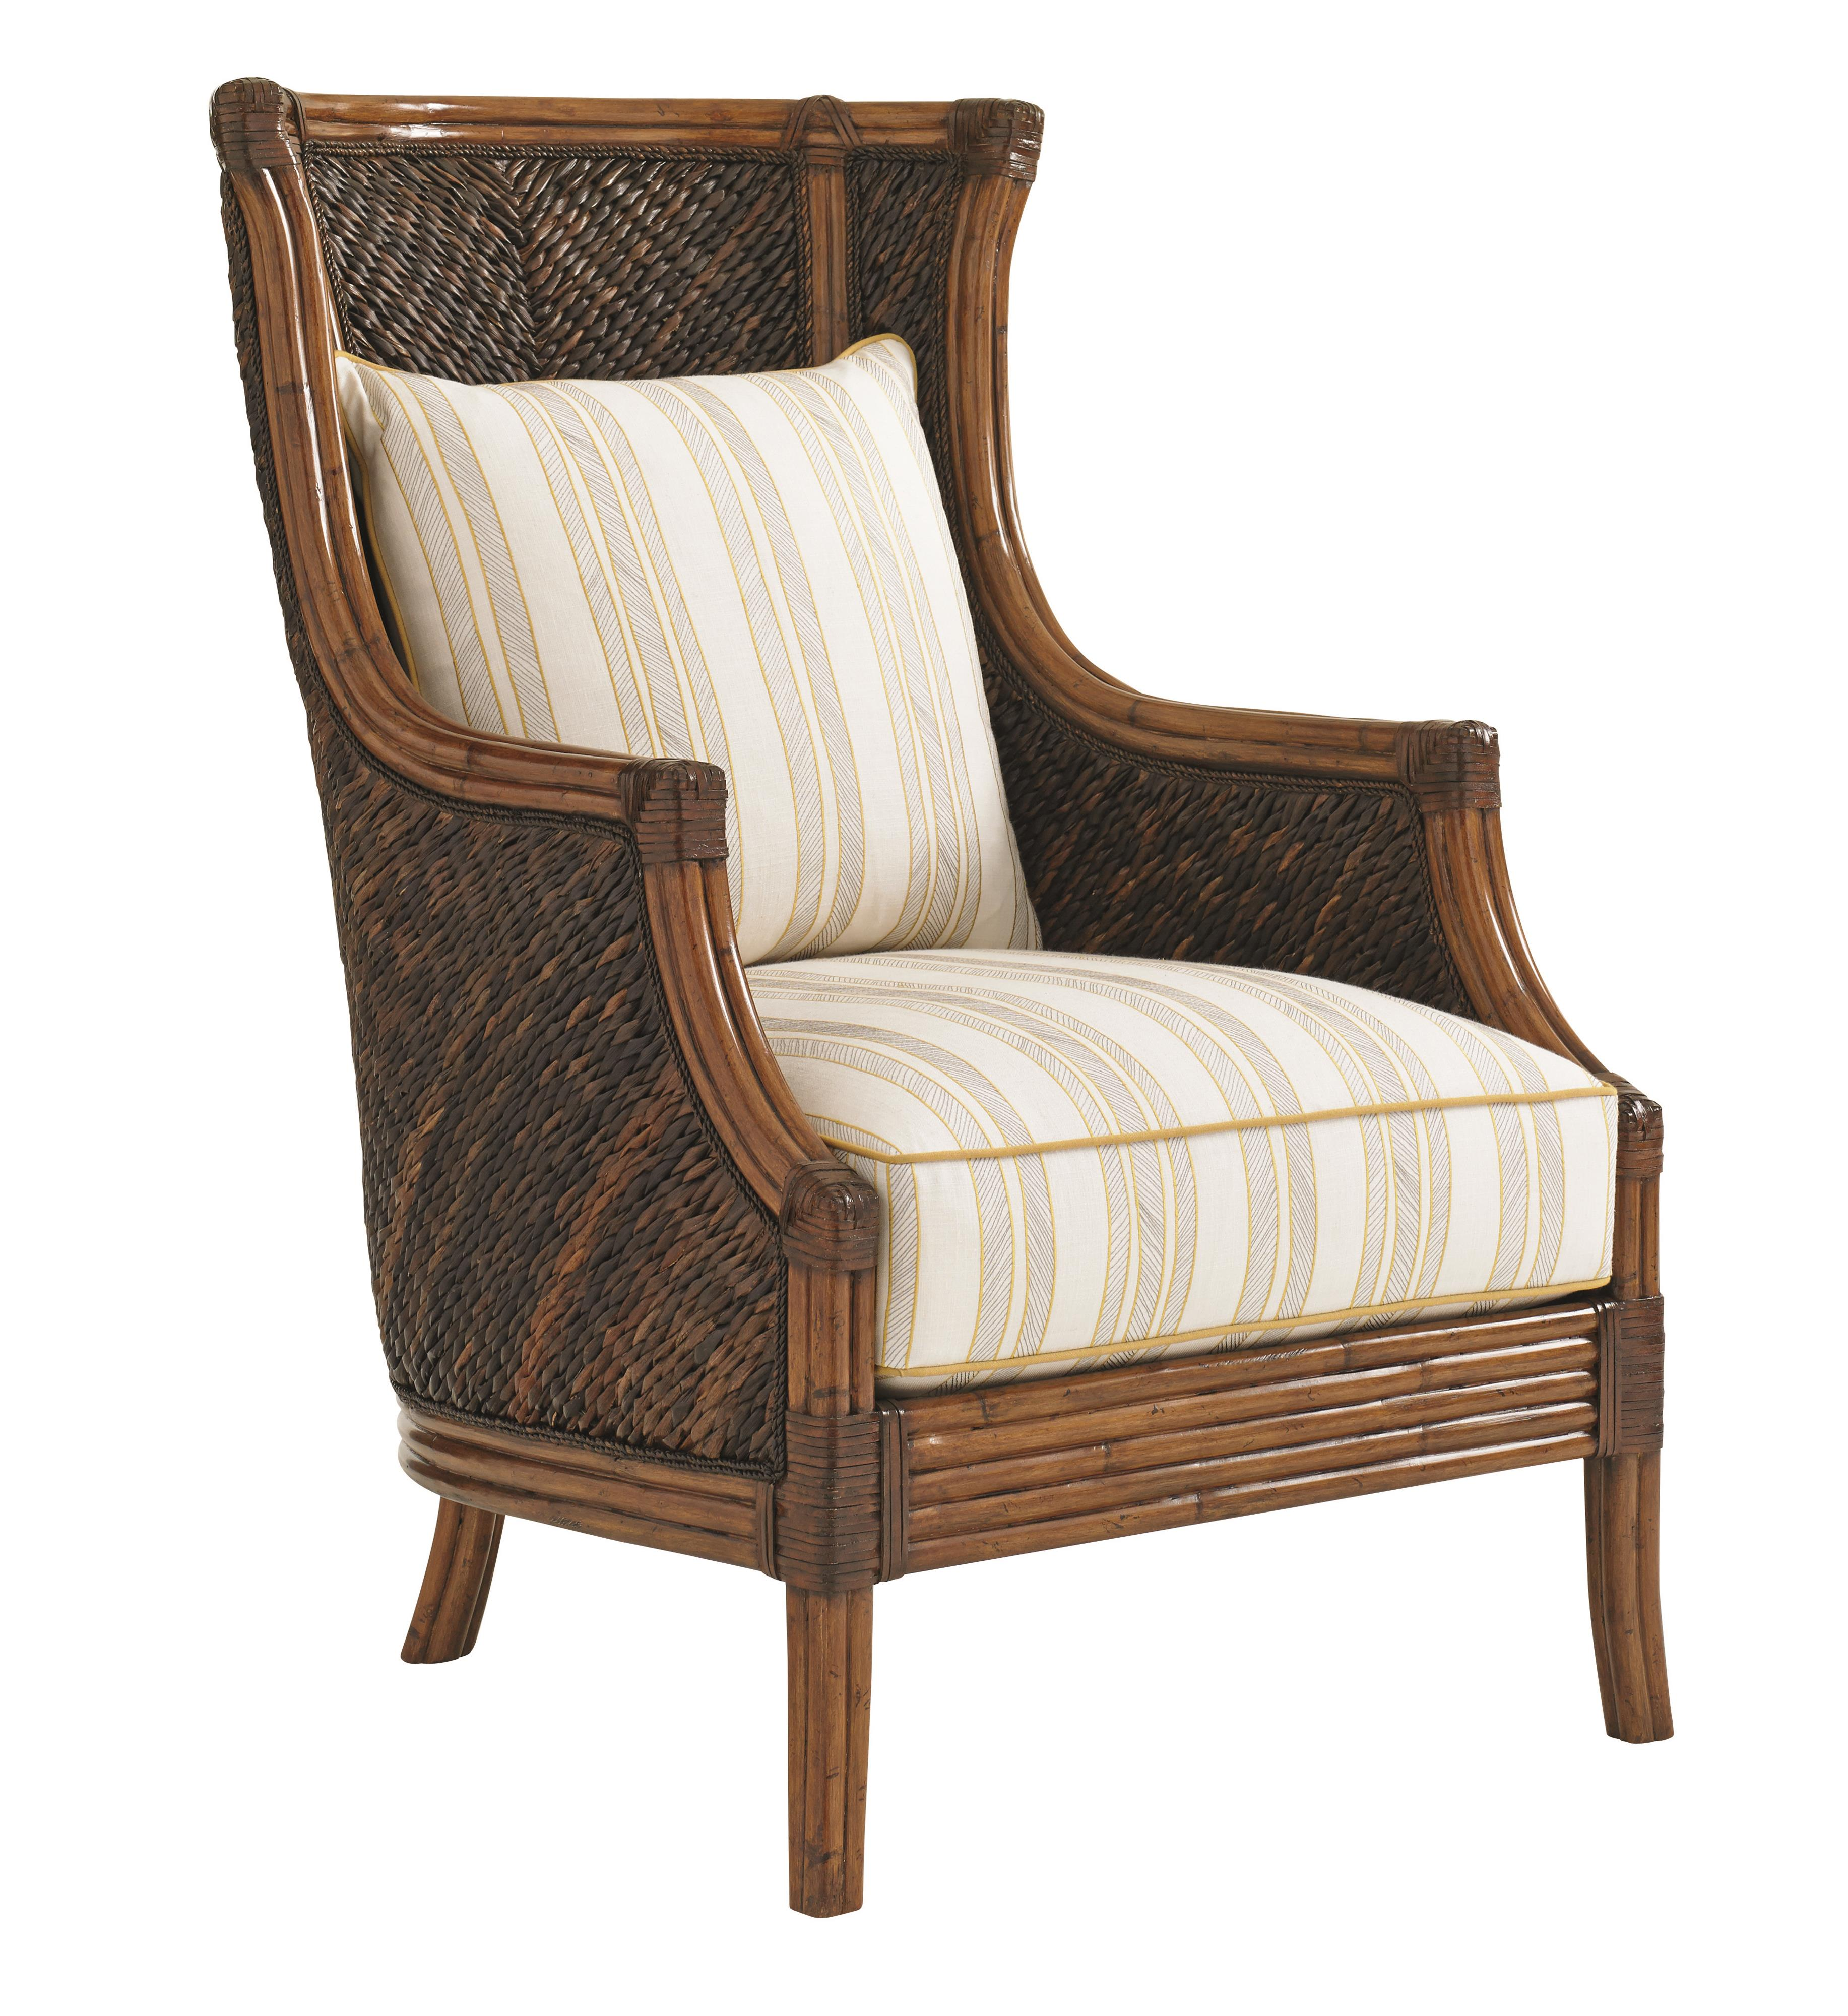 Tommy Bahama Home Island Estate Rum Beach Chair Item Number 1722 11